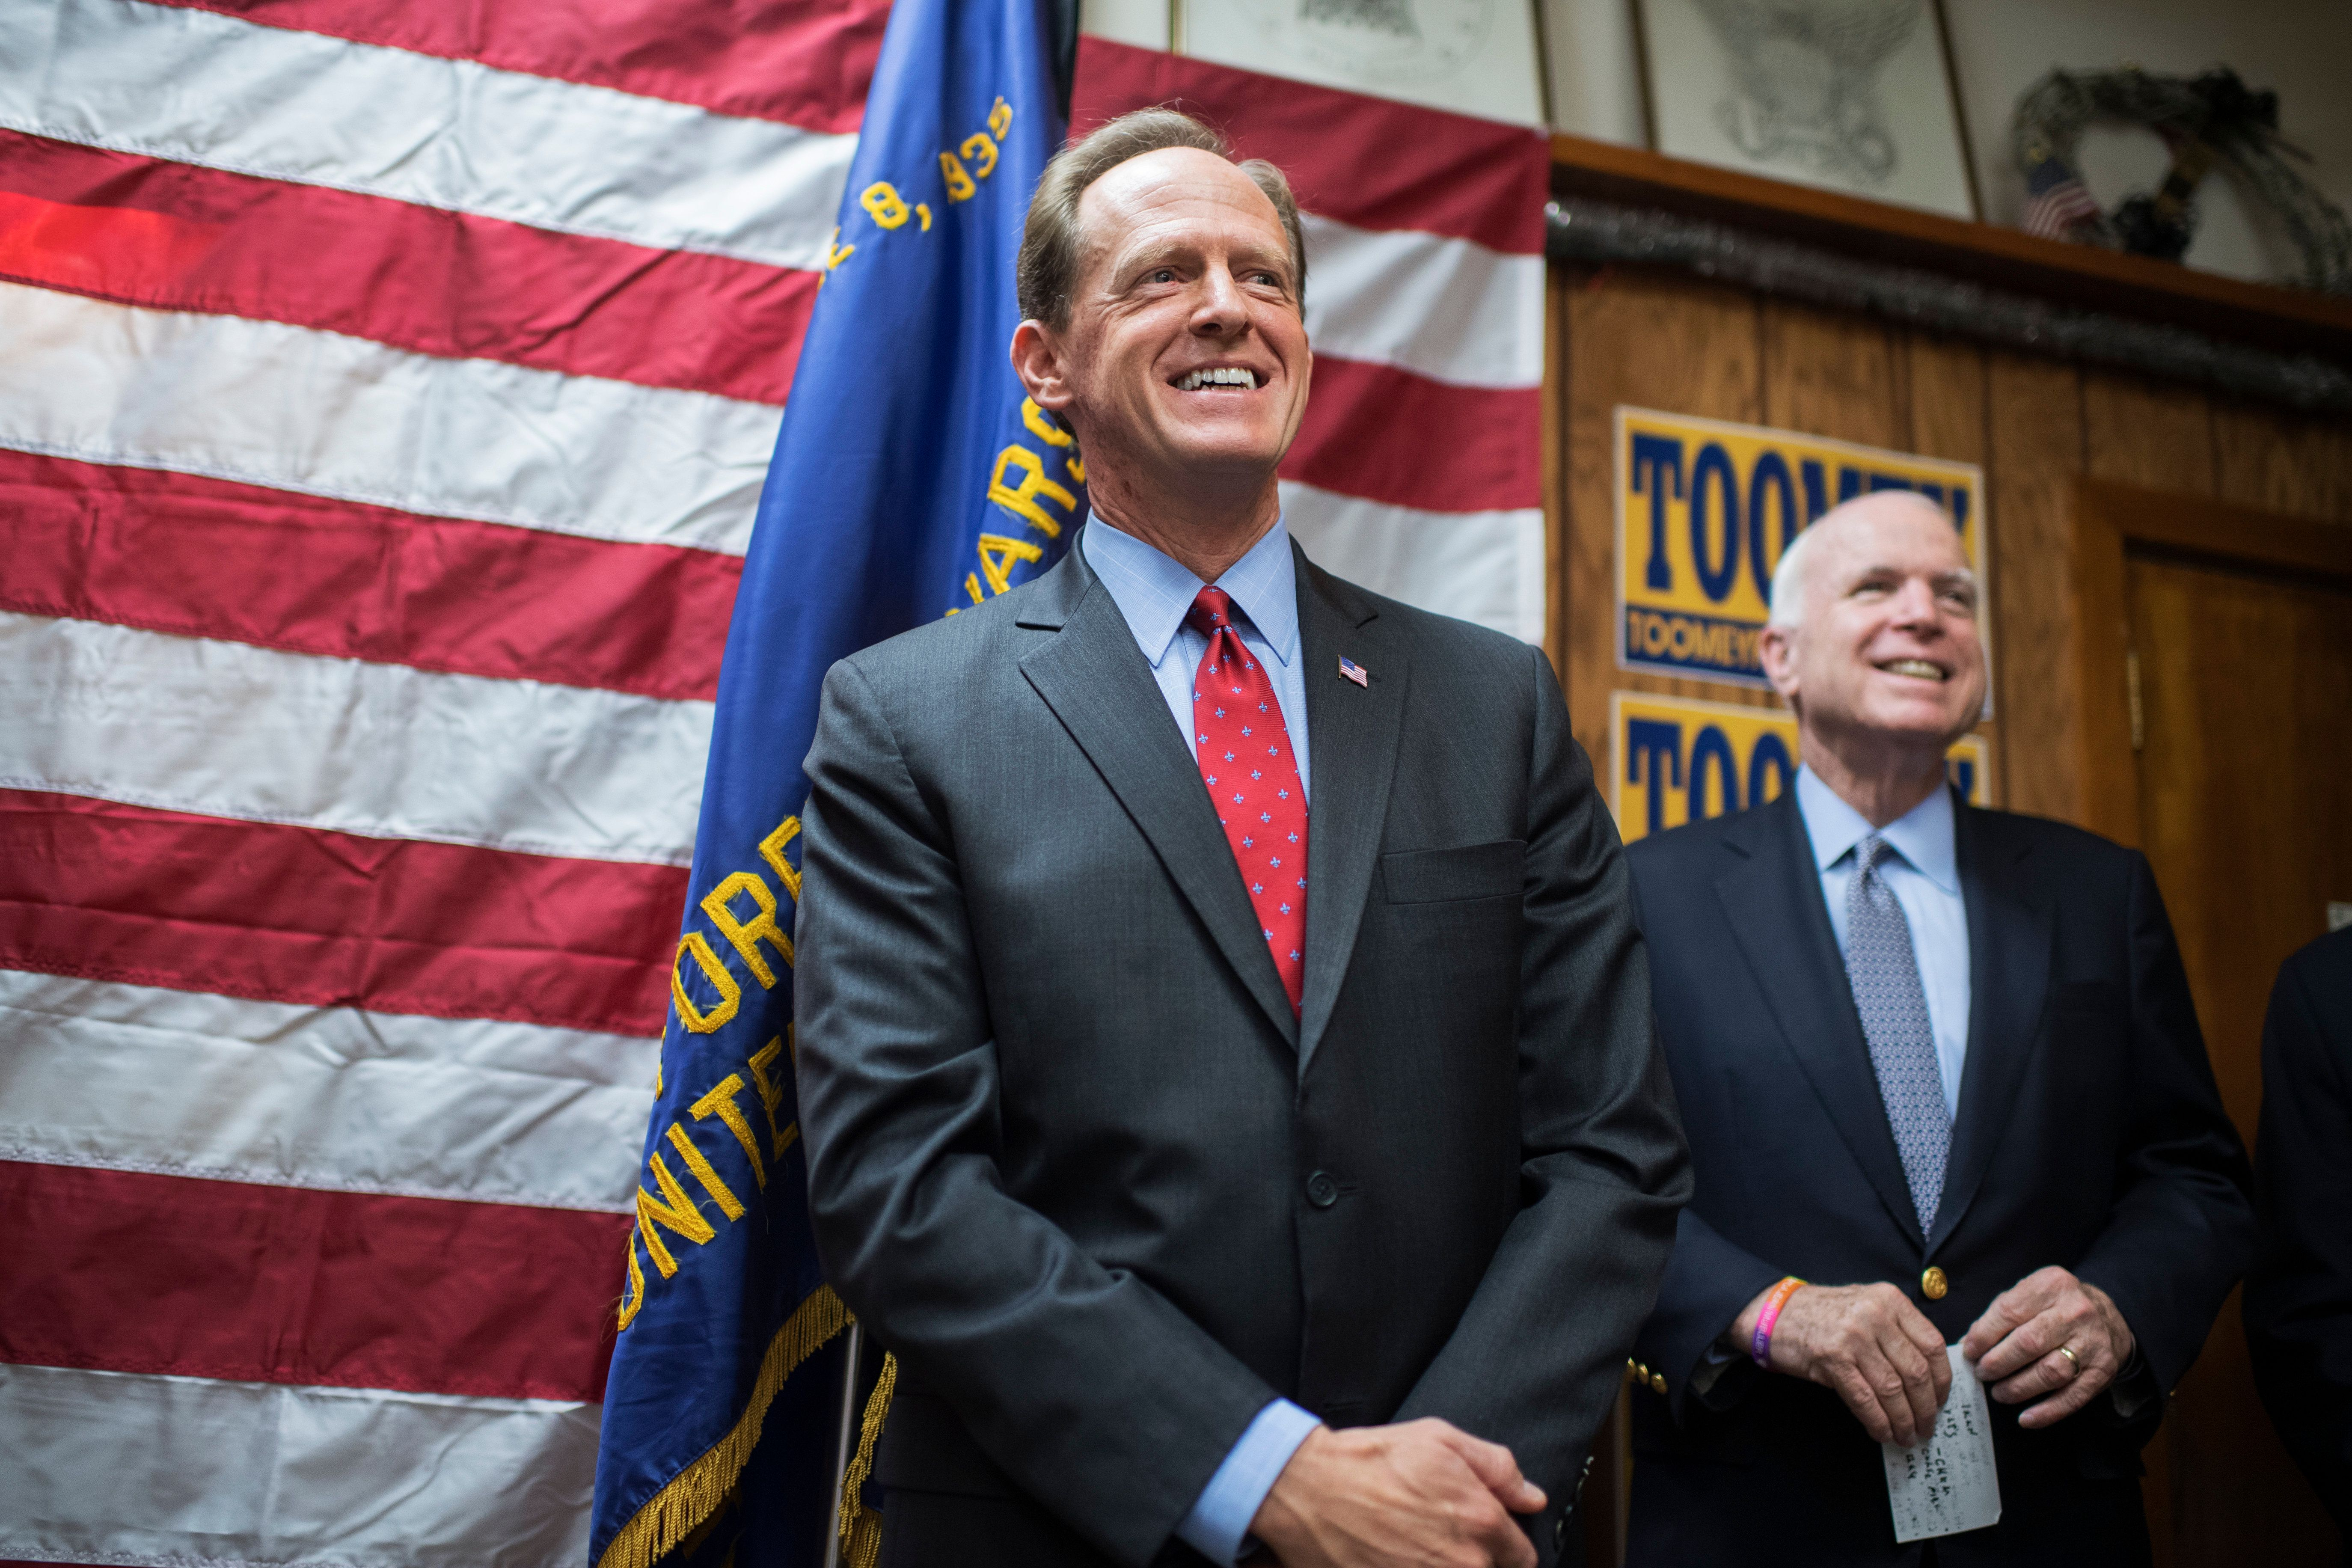 UNITED STATES - SEPTEMBER 23: Sens. Pat Toomey, R-Pa., left, and John McCain, R-Ariz., attend a campaign event for Toomey at the Herbert W. Best VFW Post 928 in Folsom, Pa., September 23, 2016. (Photo By Tom Williams/CQ Roll Call)